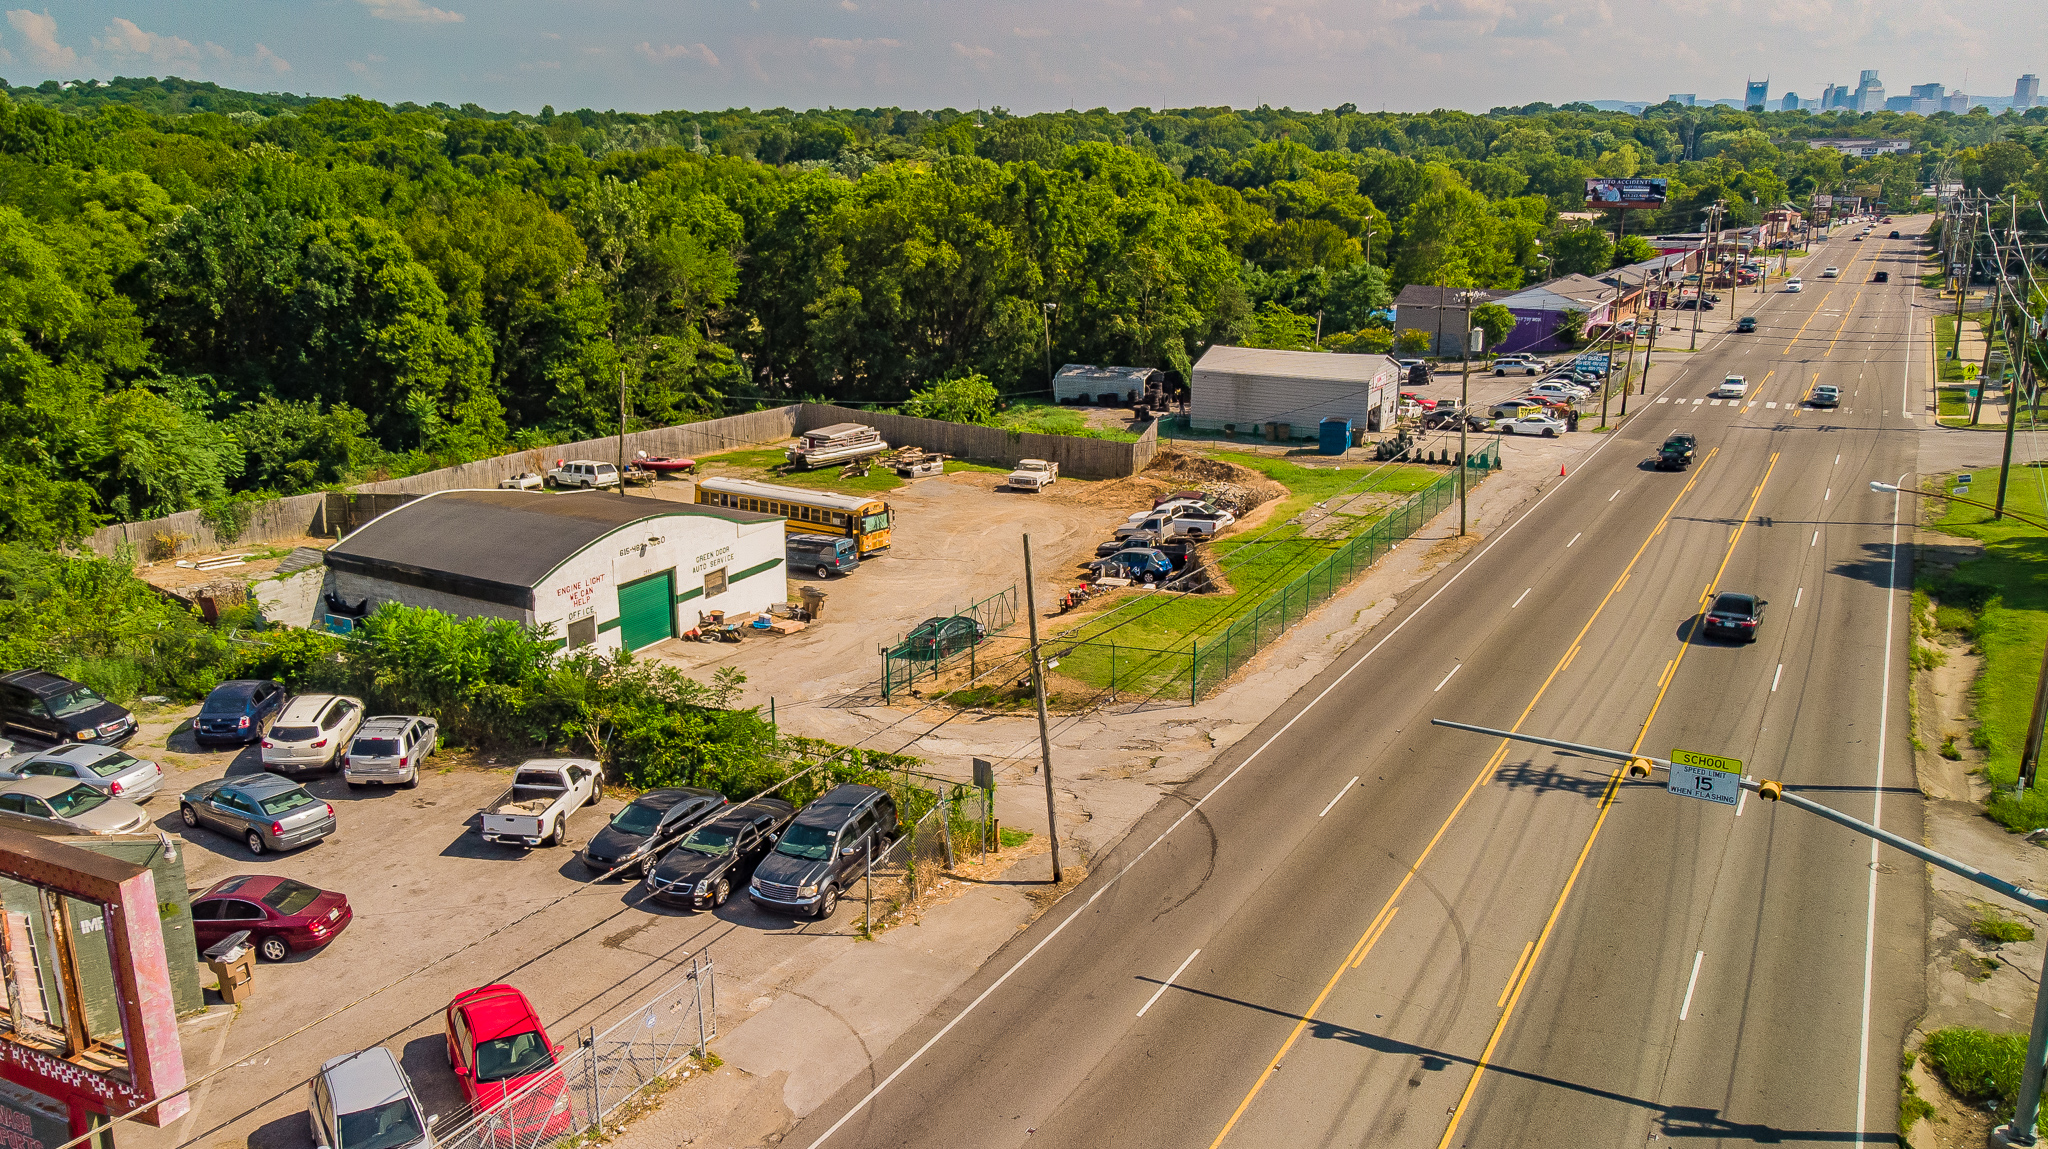 commercial building for lease on dickerson pike in nashville, office retail industrial property for lease in nashville